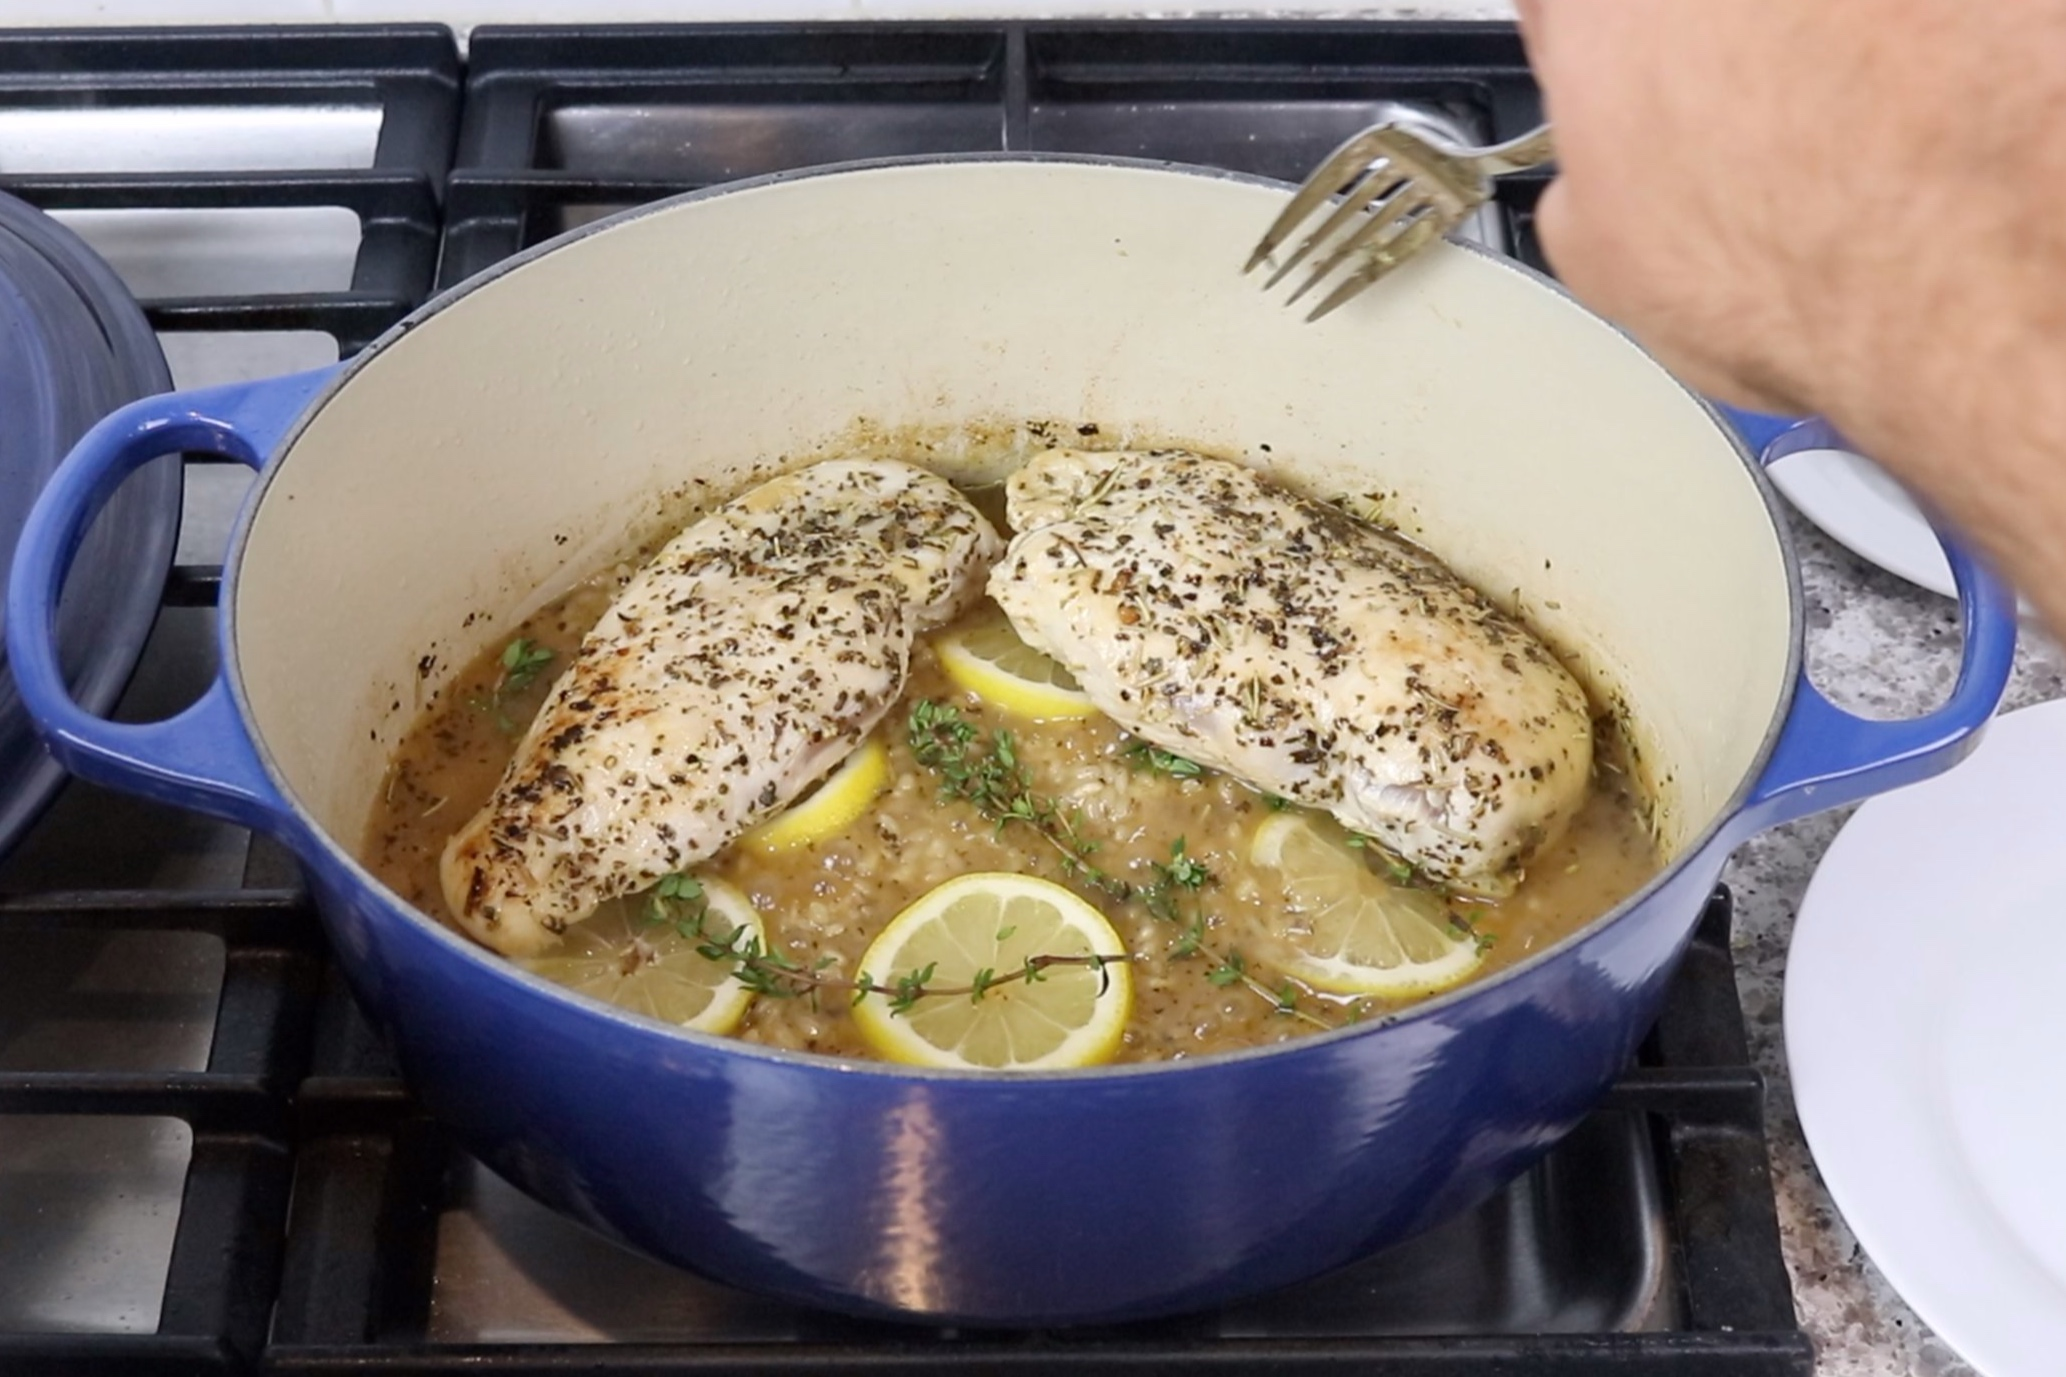 9. Uncover...stir rice and place chicken, lemon slices and fresh thyme on top of the rice. Cover and simmer another 10-15 minutes until liquid is dissolved. -